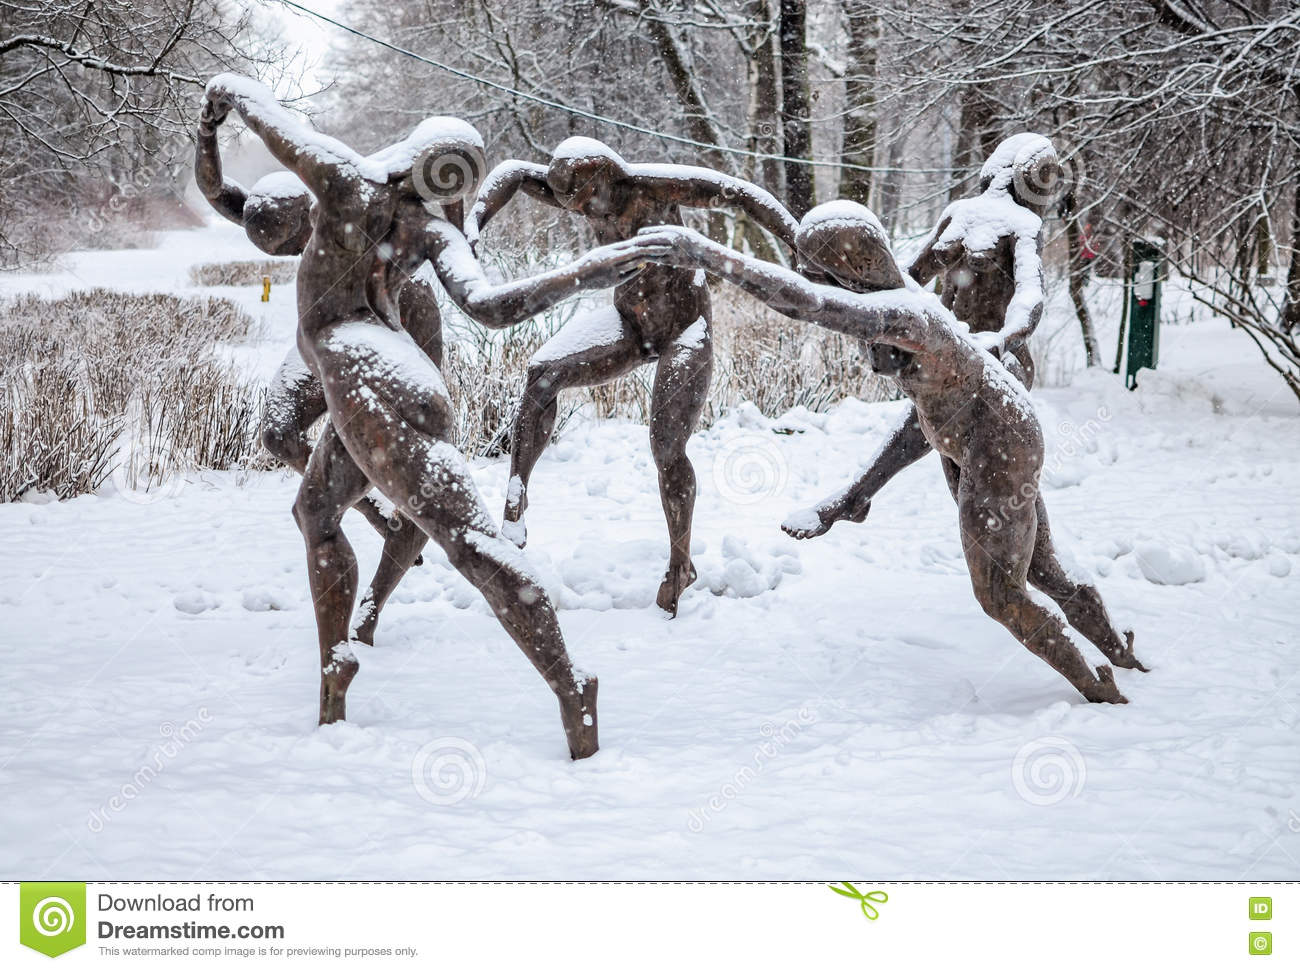 The Sculpture Dance Based On The Henri Matisse Painting In ...